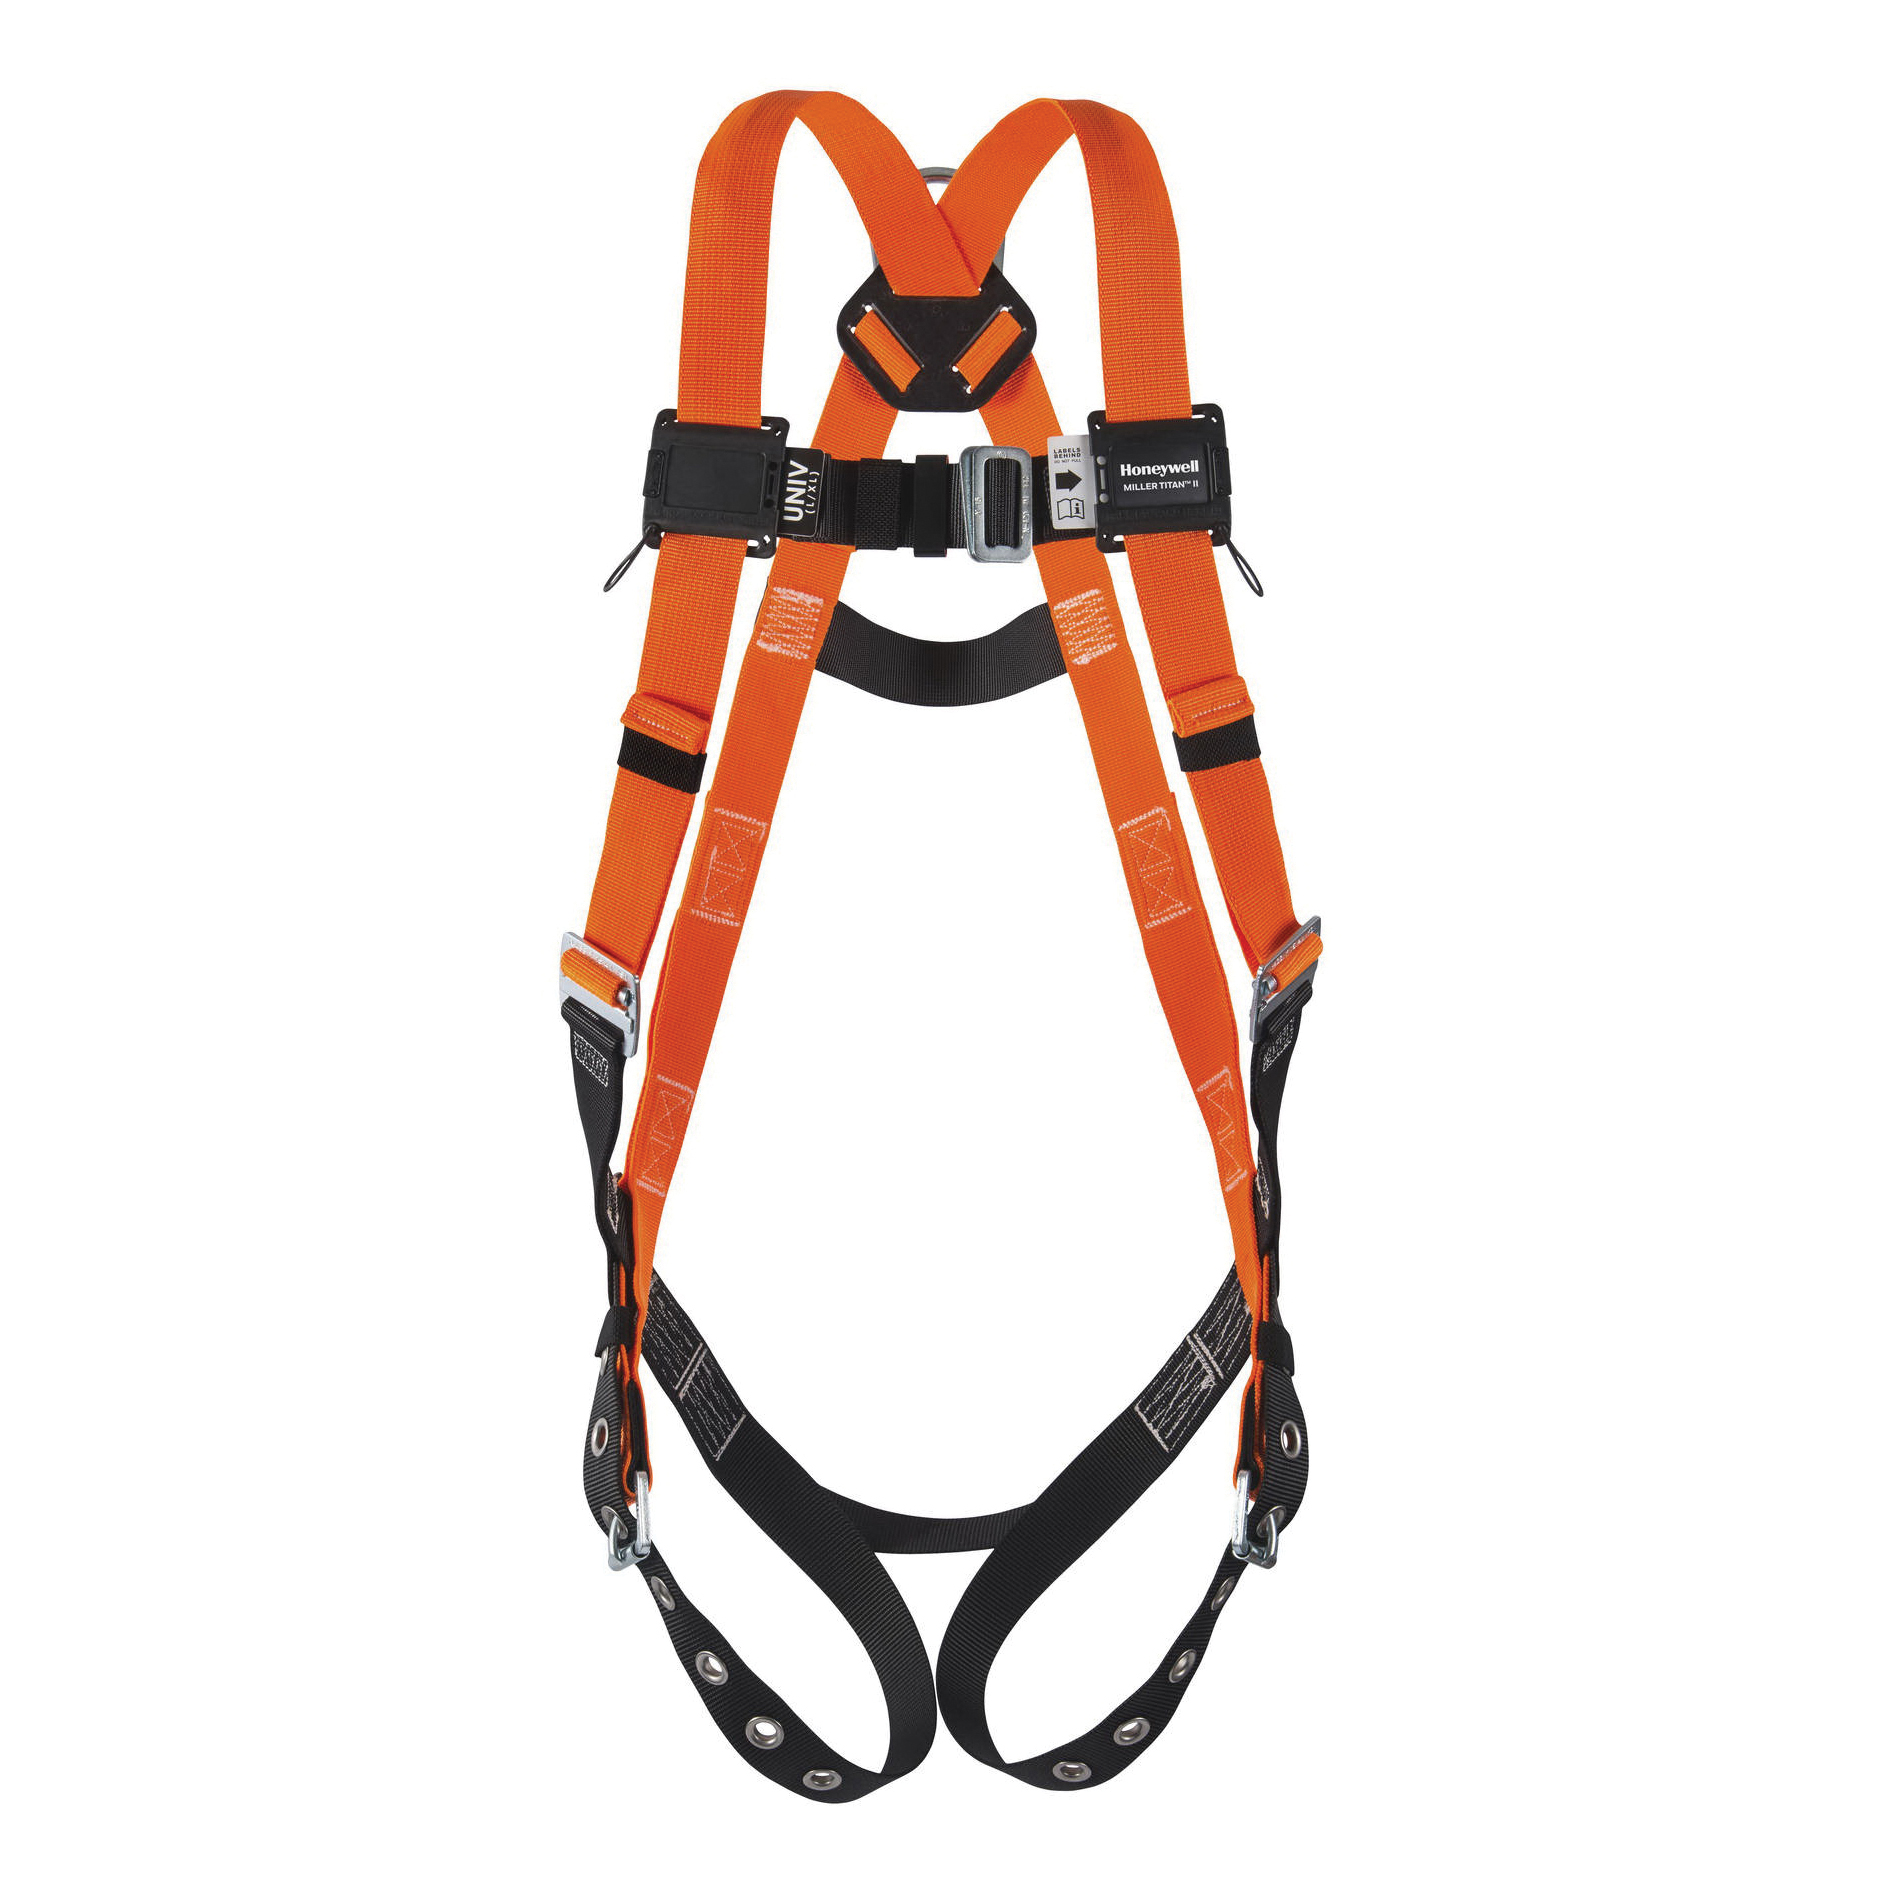 Miller® by Honeywell TiTAN™ T4500/UAK Non-Stretchable Harness, Universal, 400 lb Load, Polyester Strap, Tongue Leg Strap Buckle, Mating Chest Strap Buckle, Mating Shoulder Strap Buckle, Steel Hardware, Black/Orange